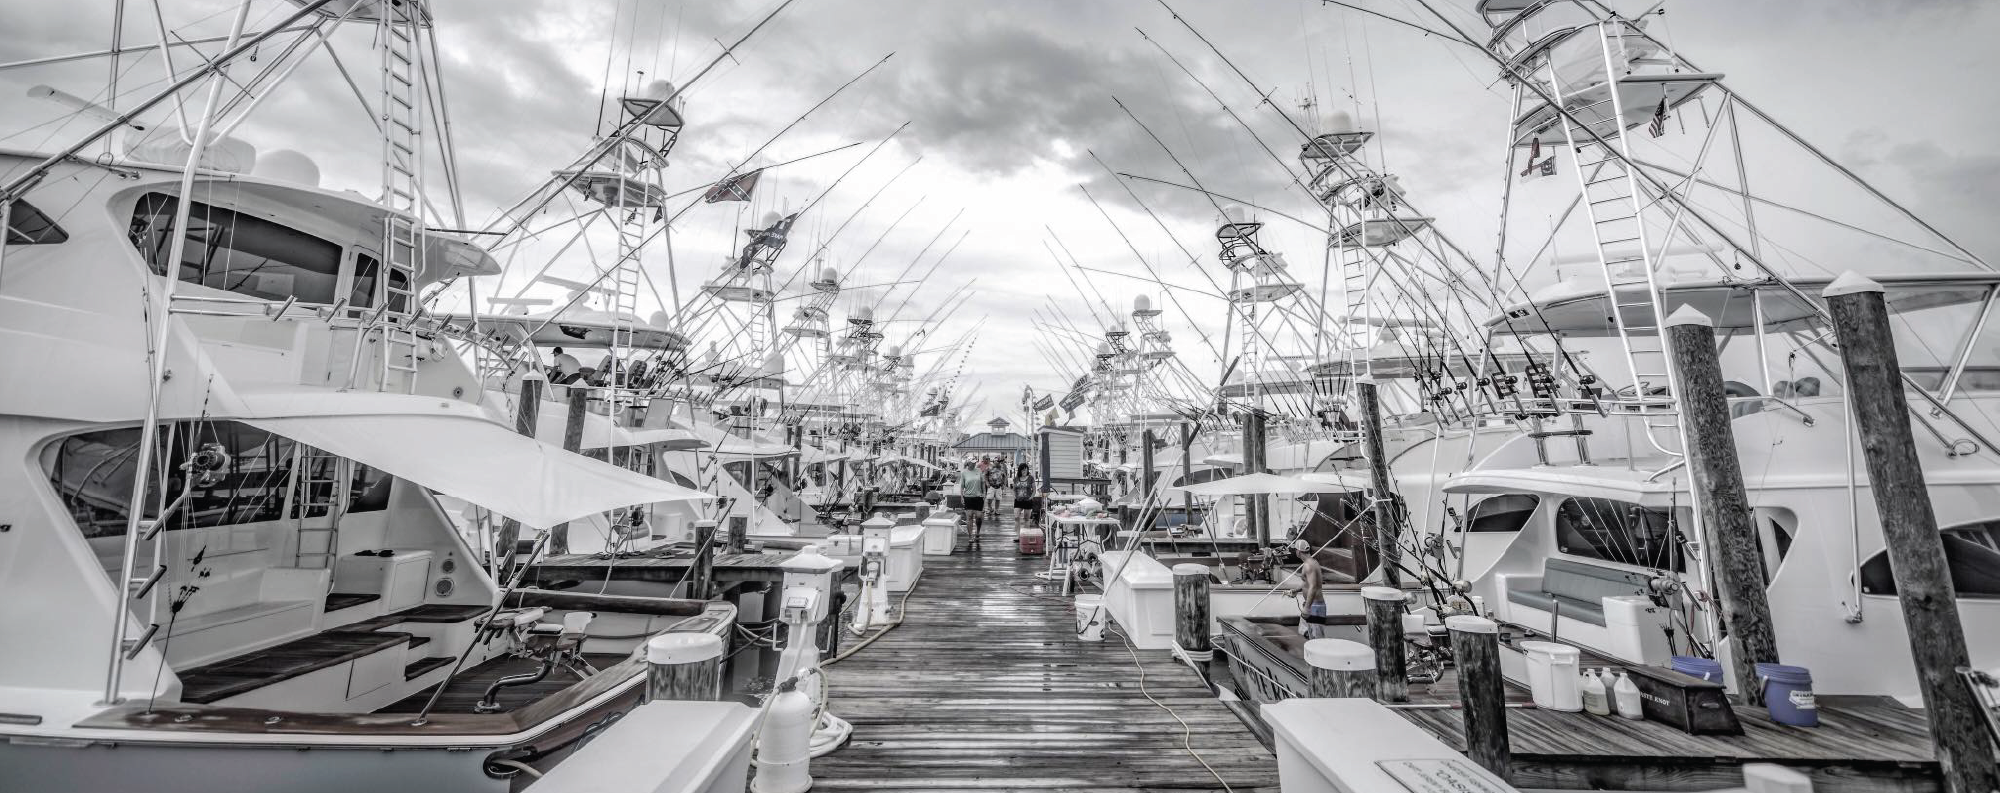 Greyscale Marina dock full of fishing boats